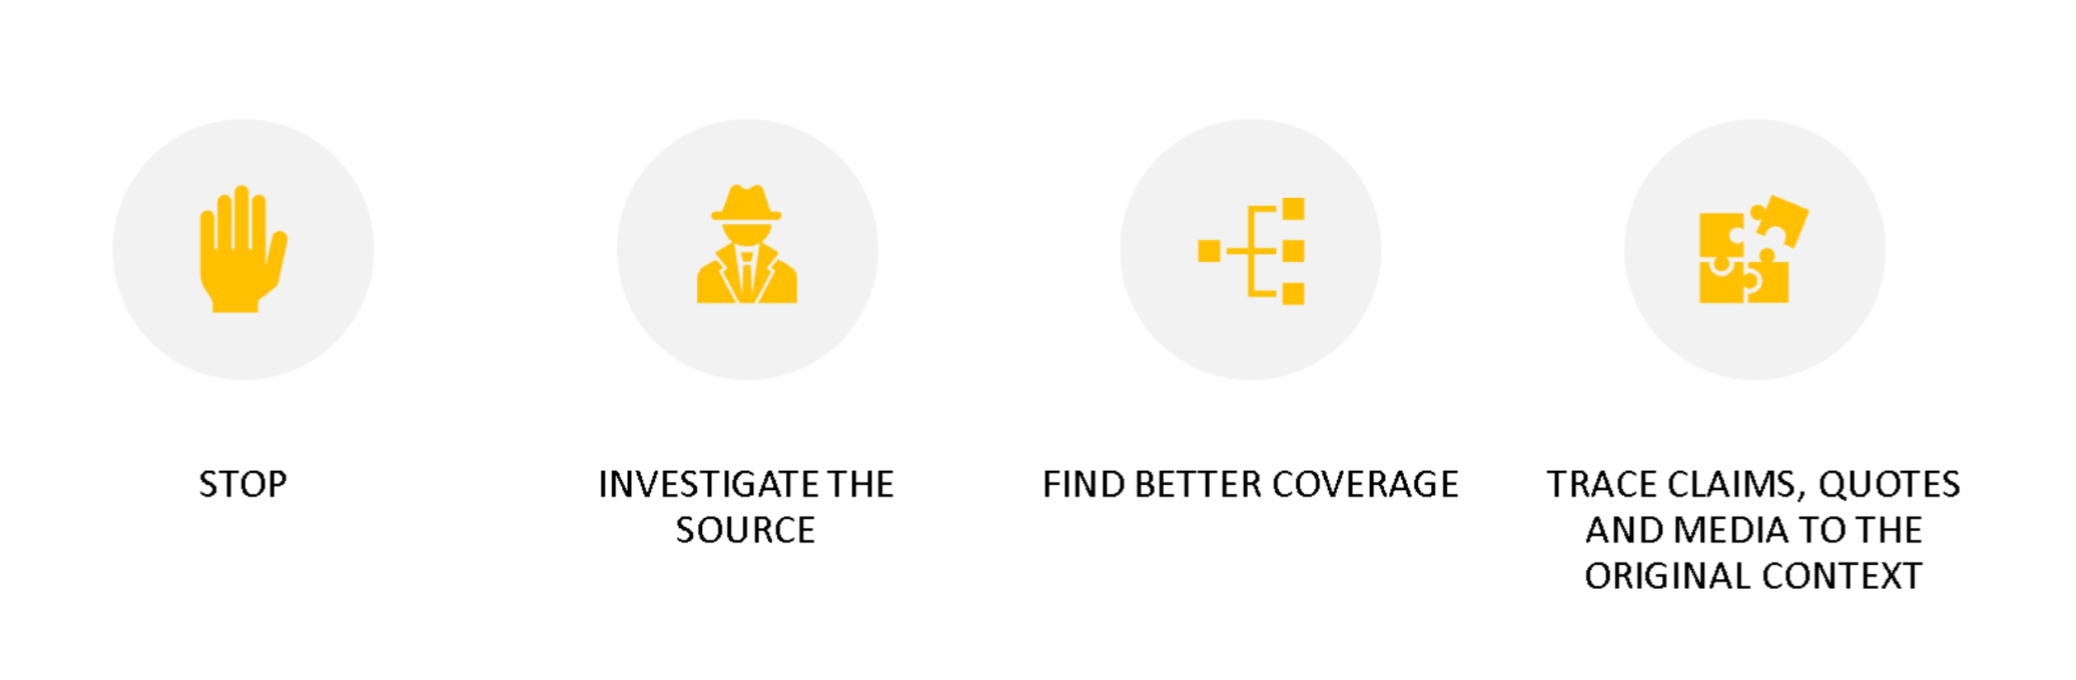 Stop; Investigate the Source; Find Better Coverage; Trace Claims, Quotes and Media to the Original Context